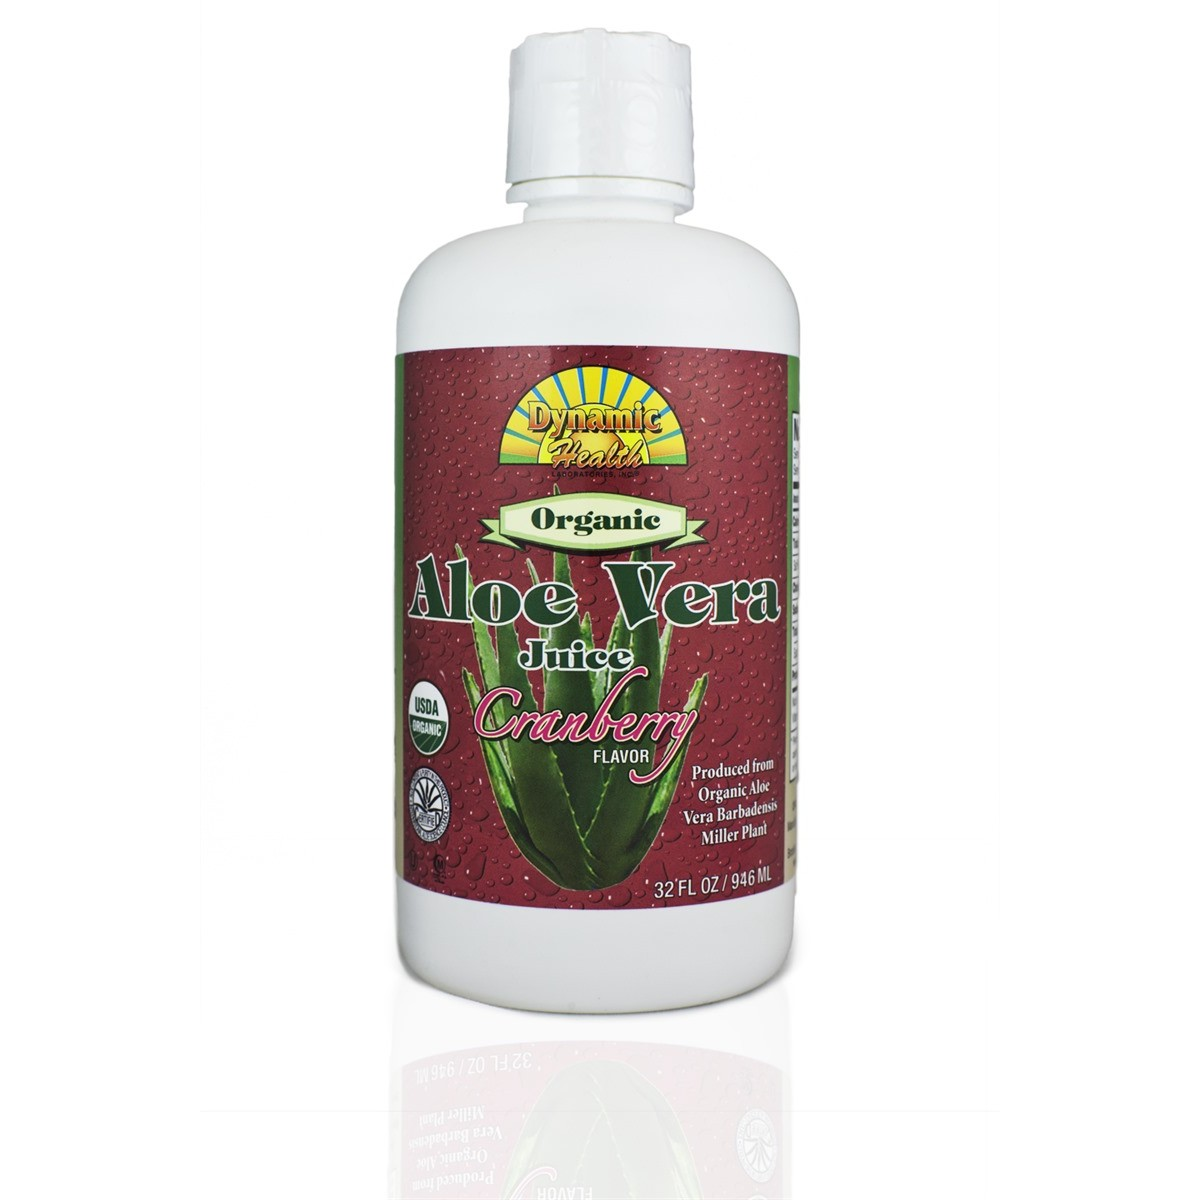 aloe vera aloe vera juice aloe juice aloe vera benefits lose weight perfect shape. Black Bedroom Furniture Sets. Home Design Ideas